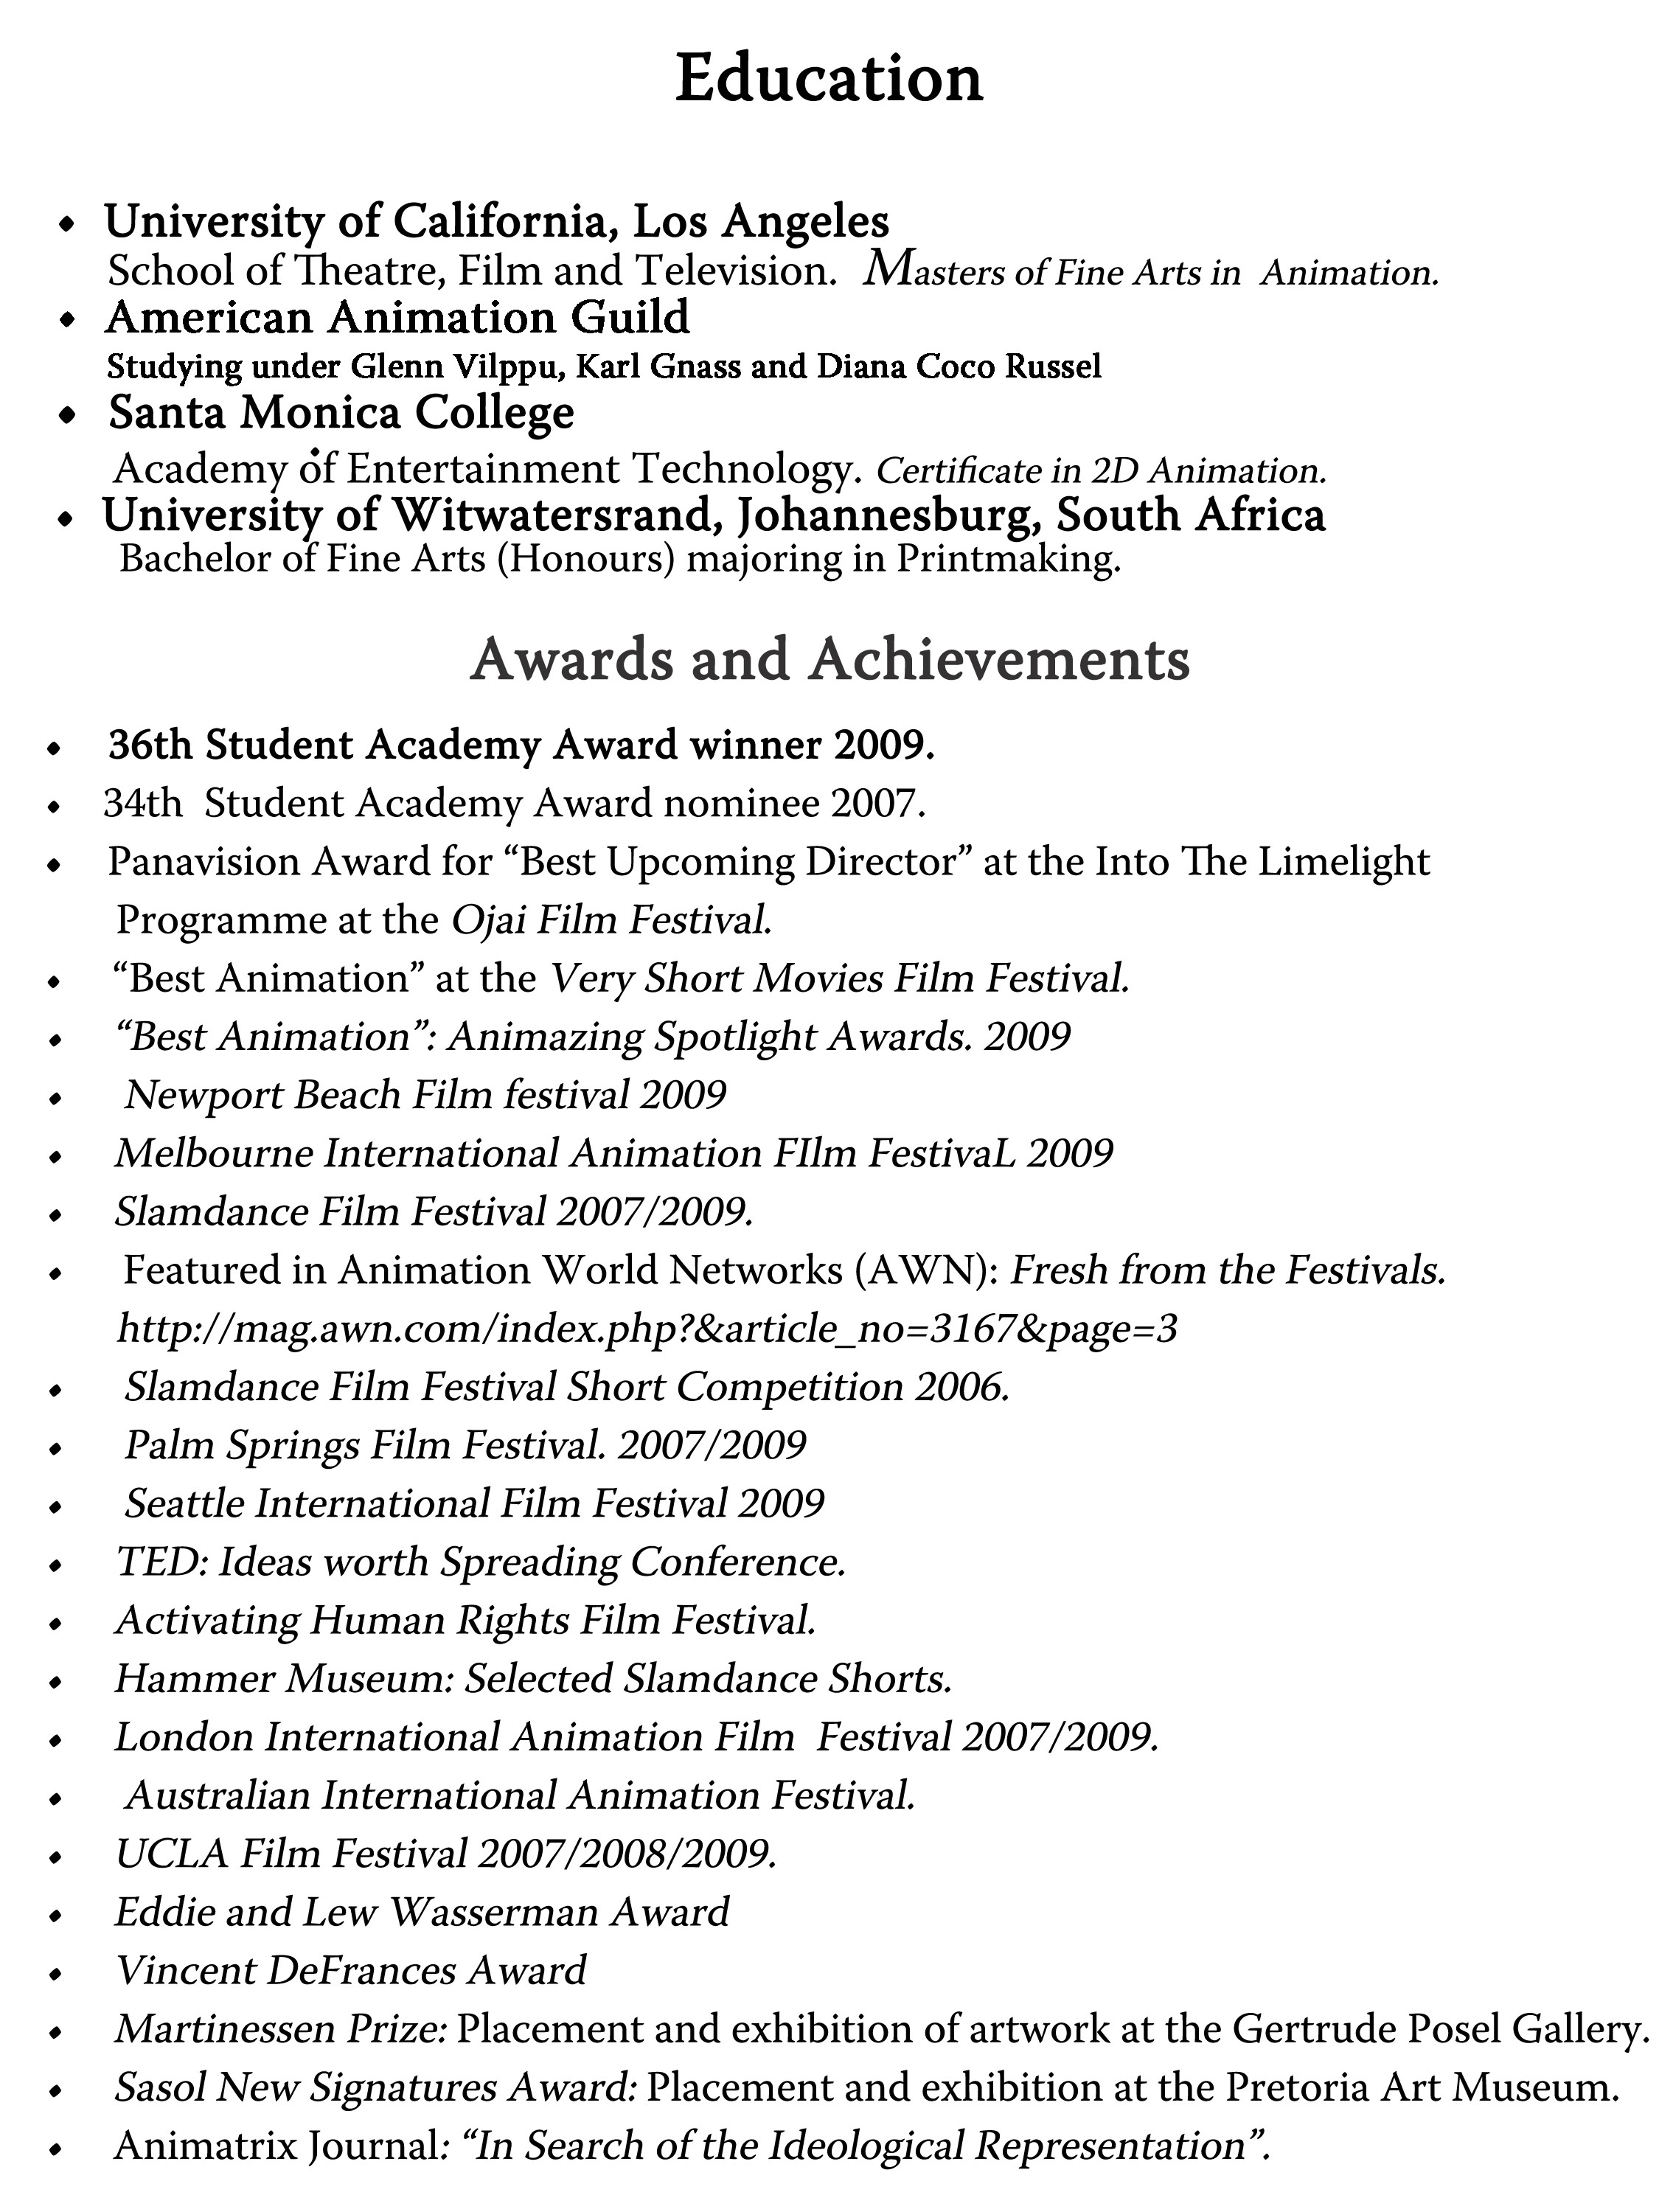 Education Awards Achievements